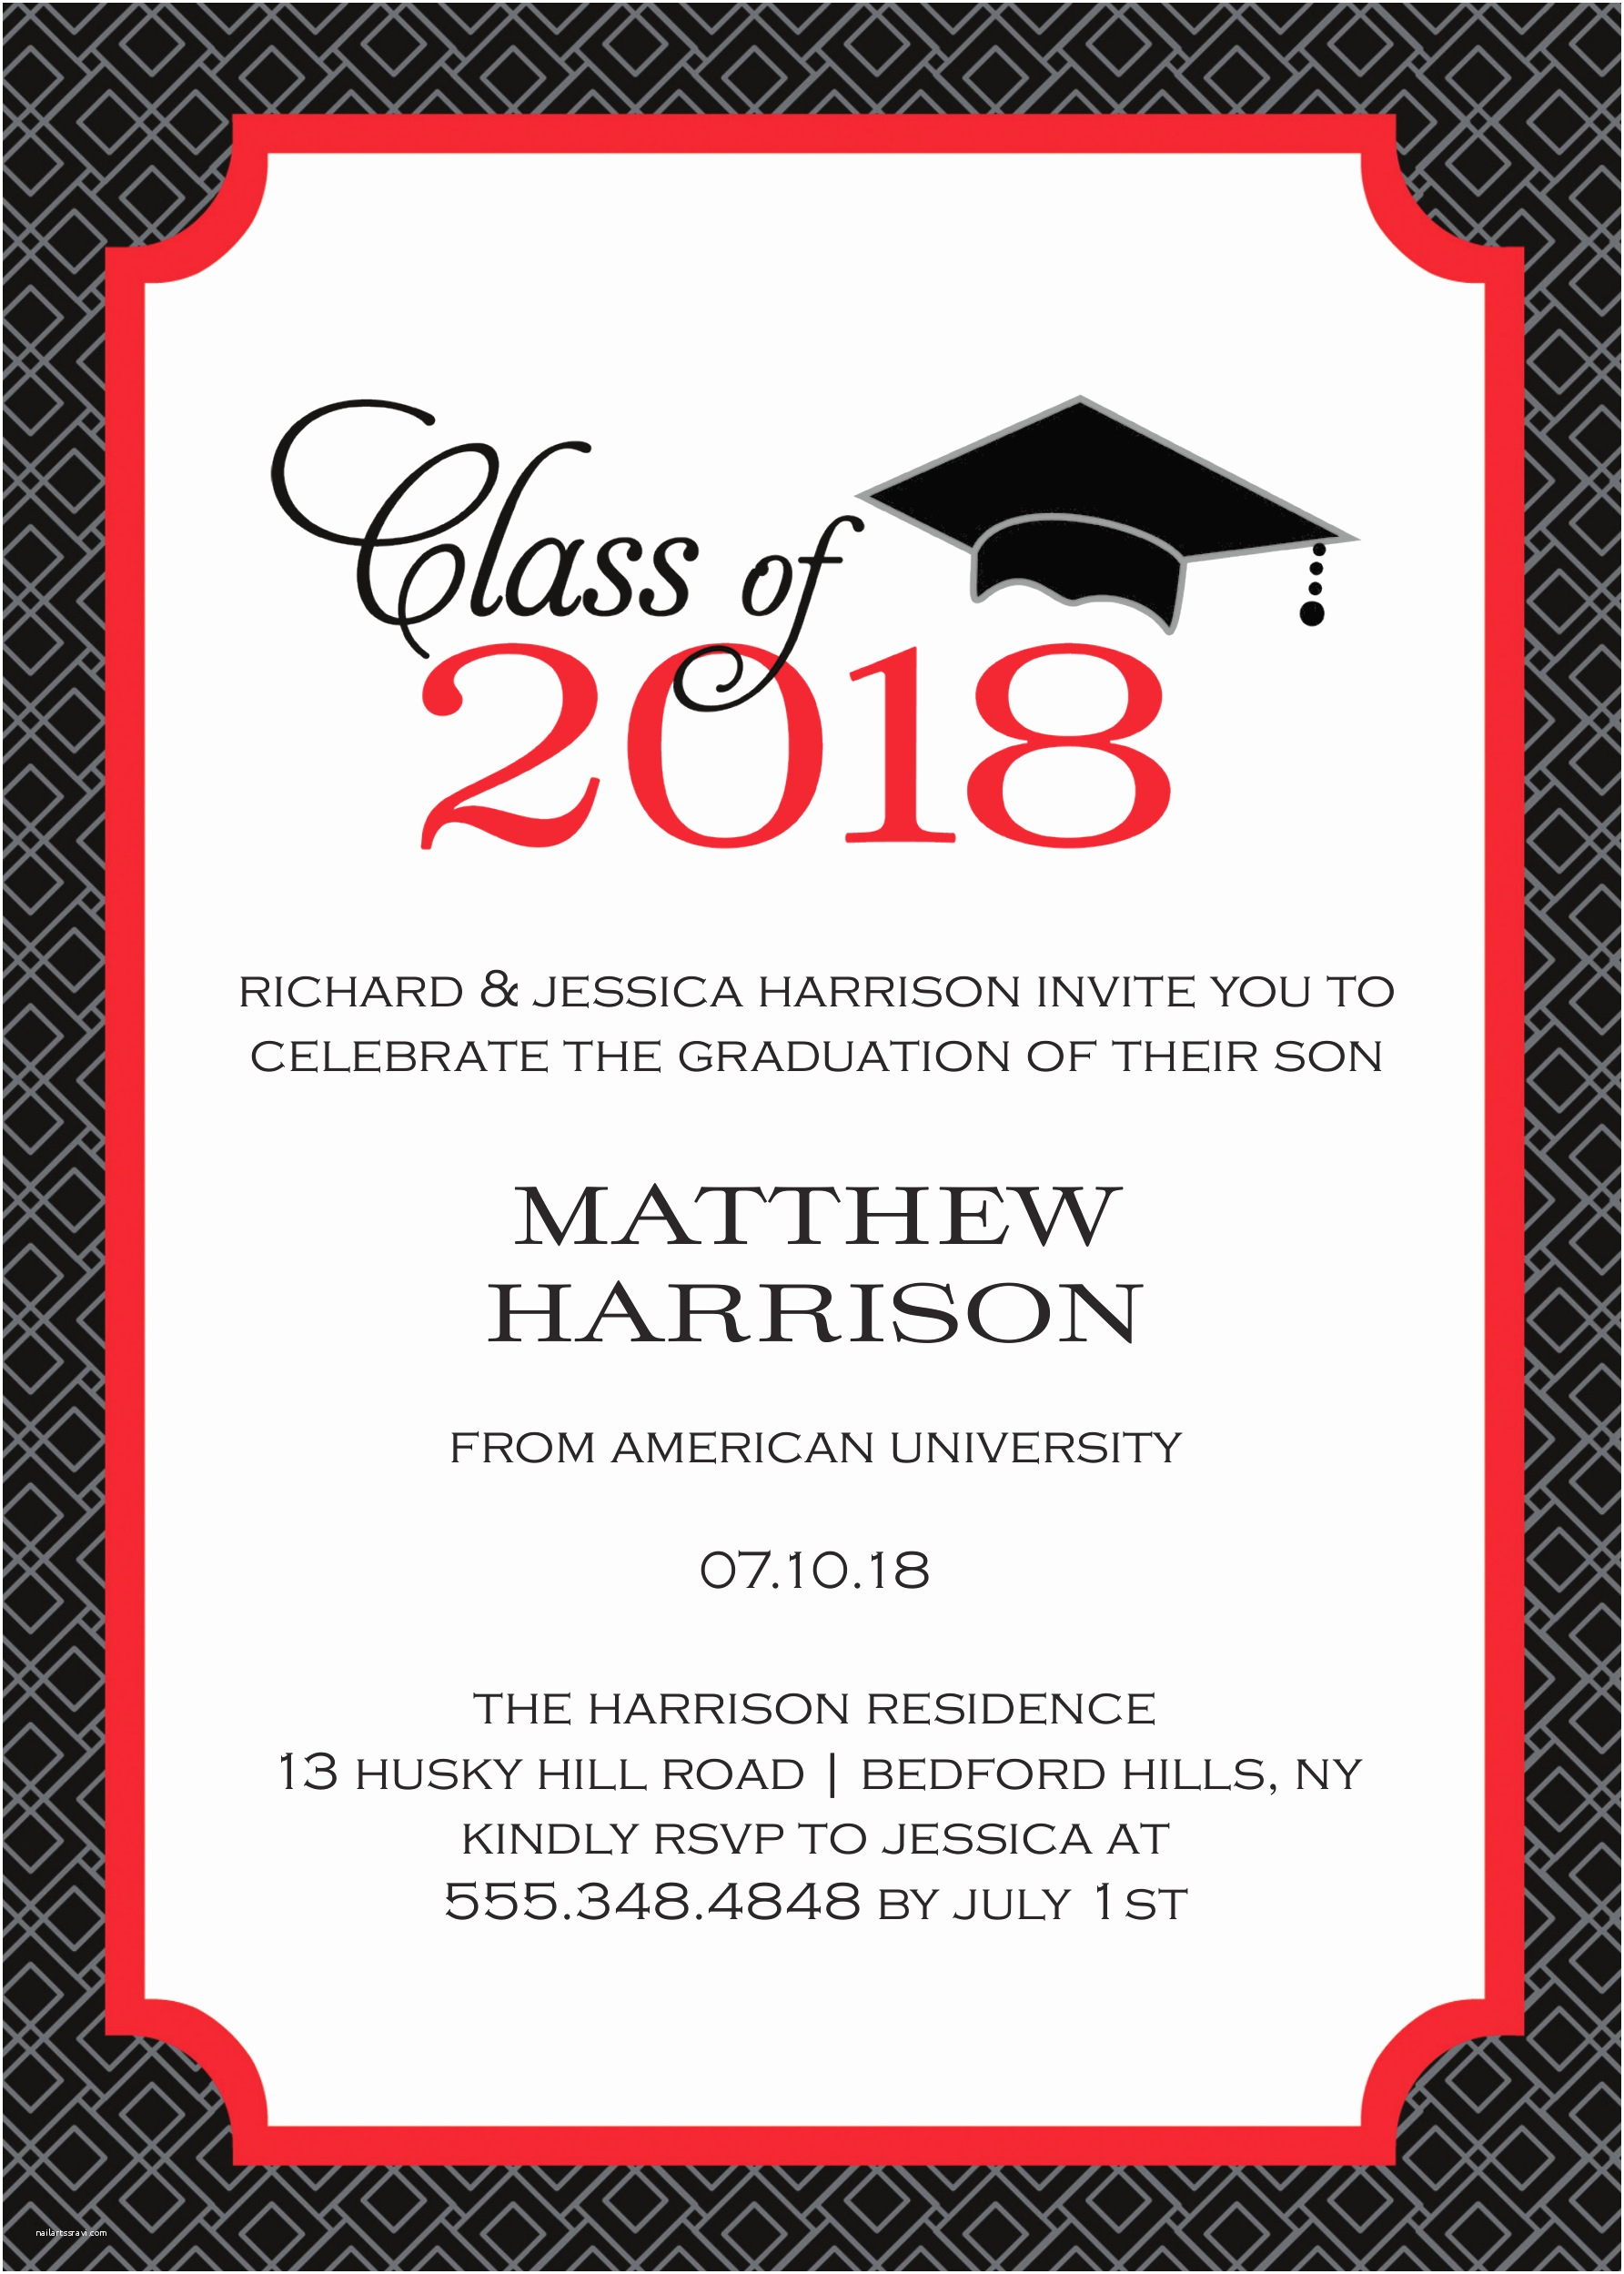 Graduation Party Invites Graduation Party Invitations High School or College